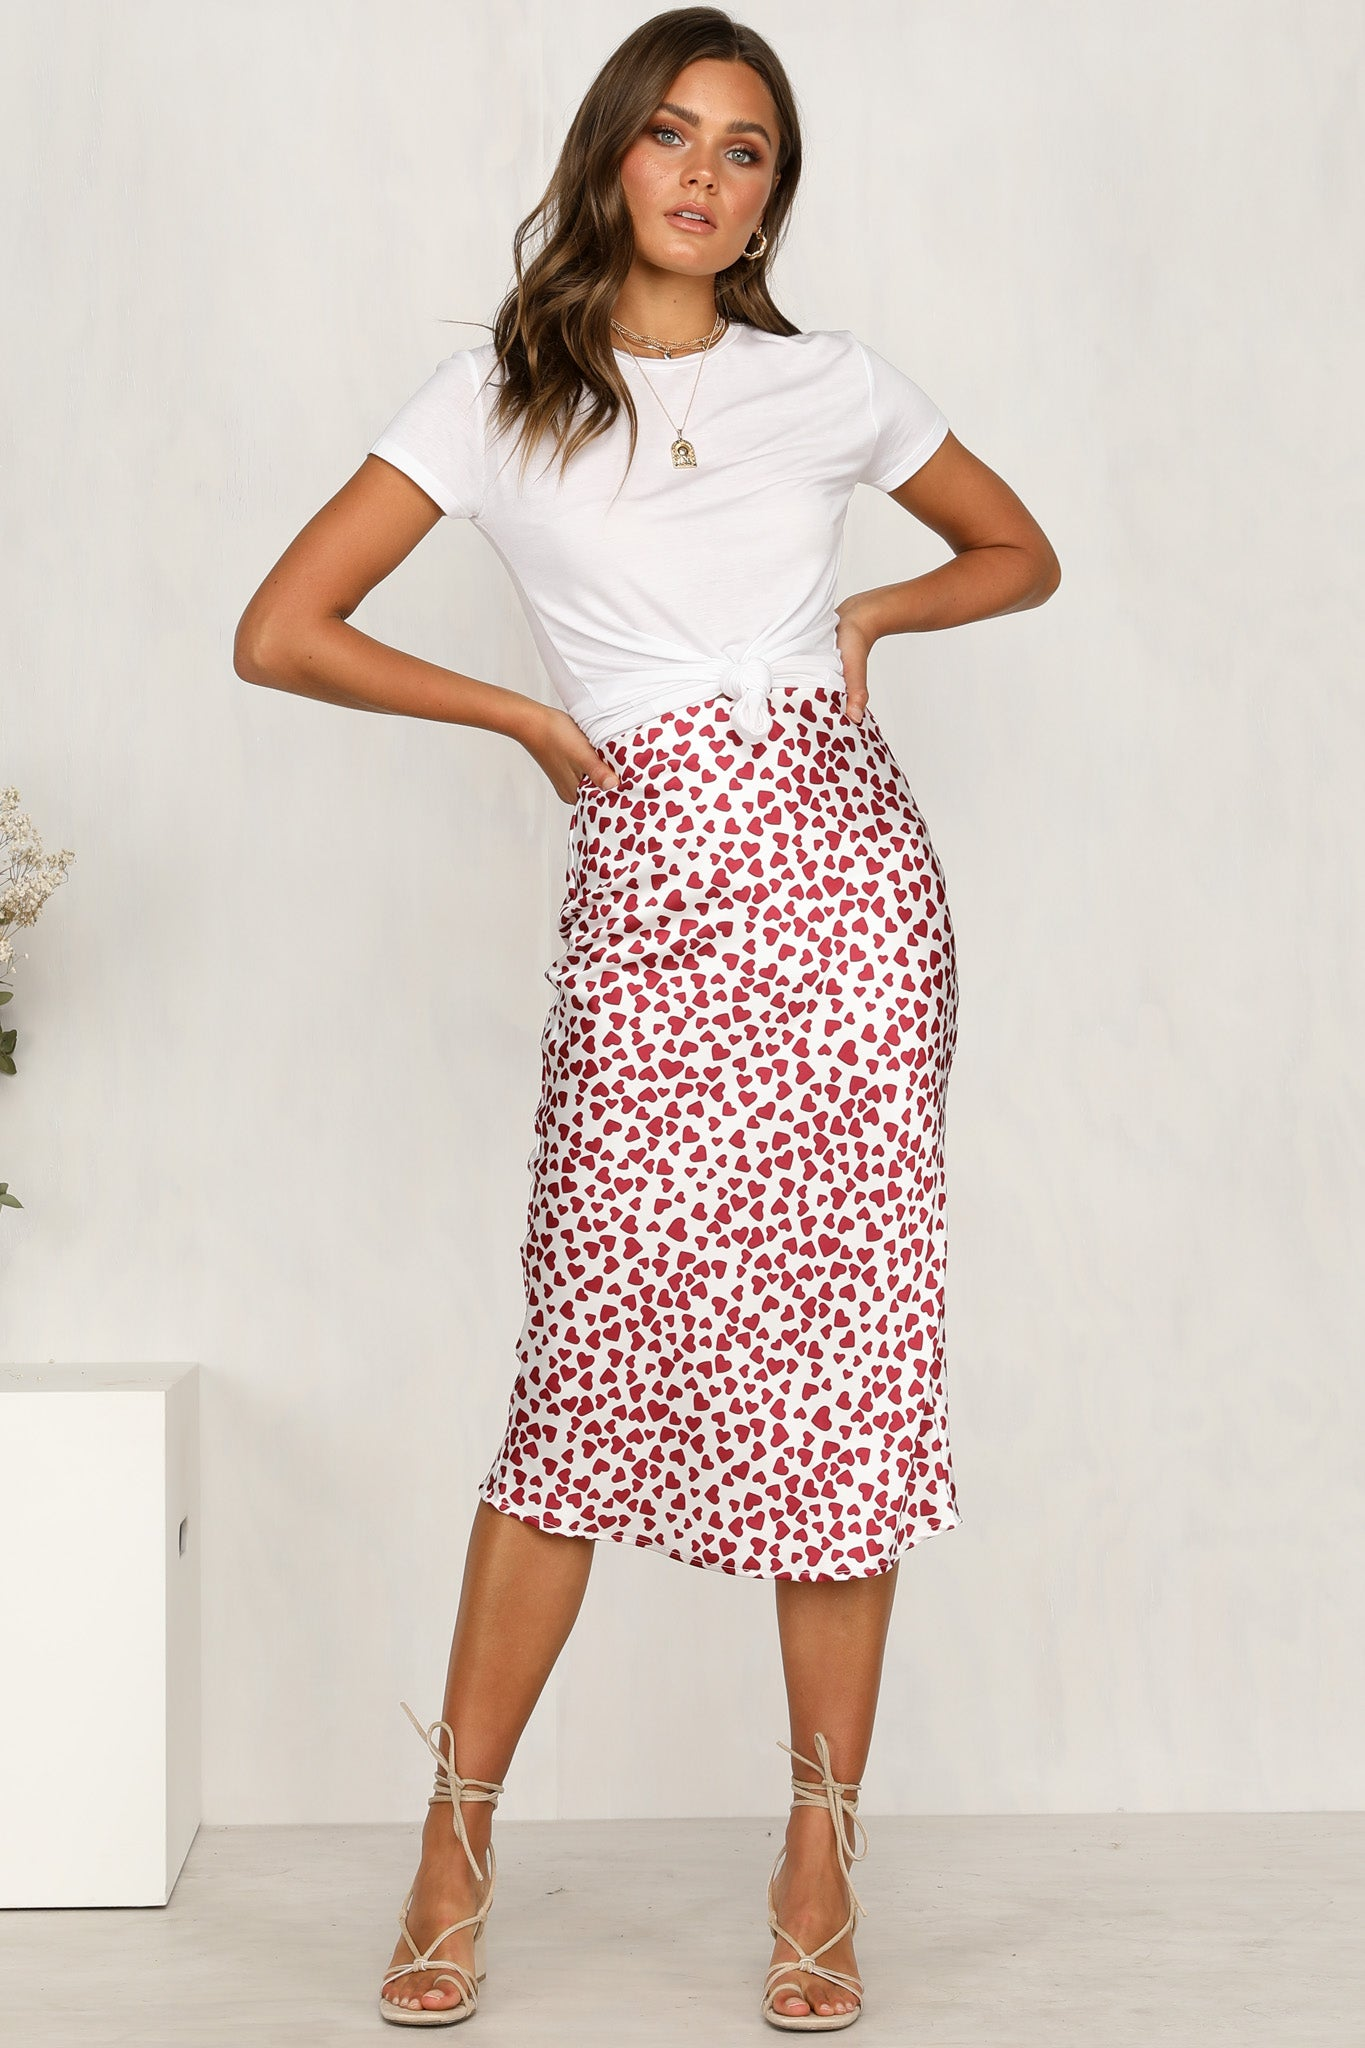 Provocateur Skirt (White)